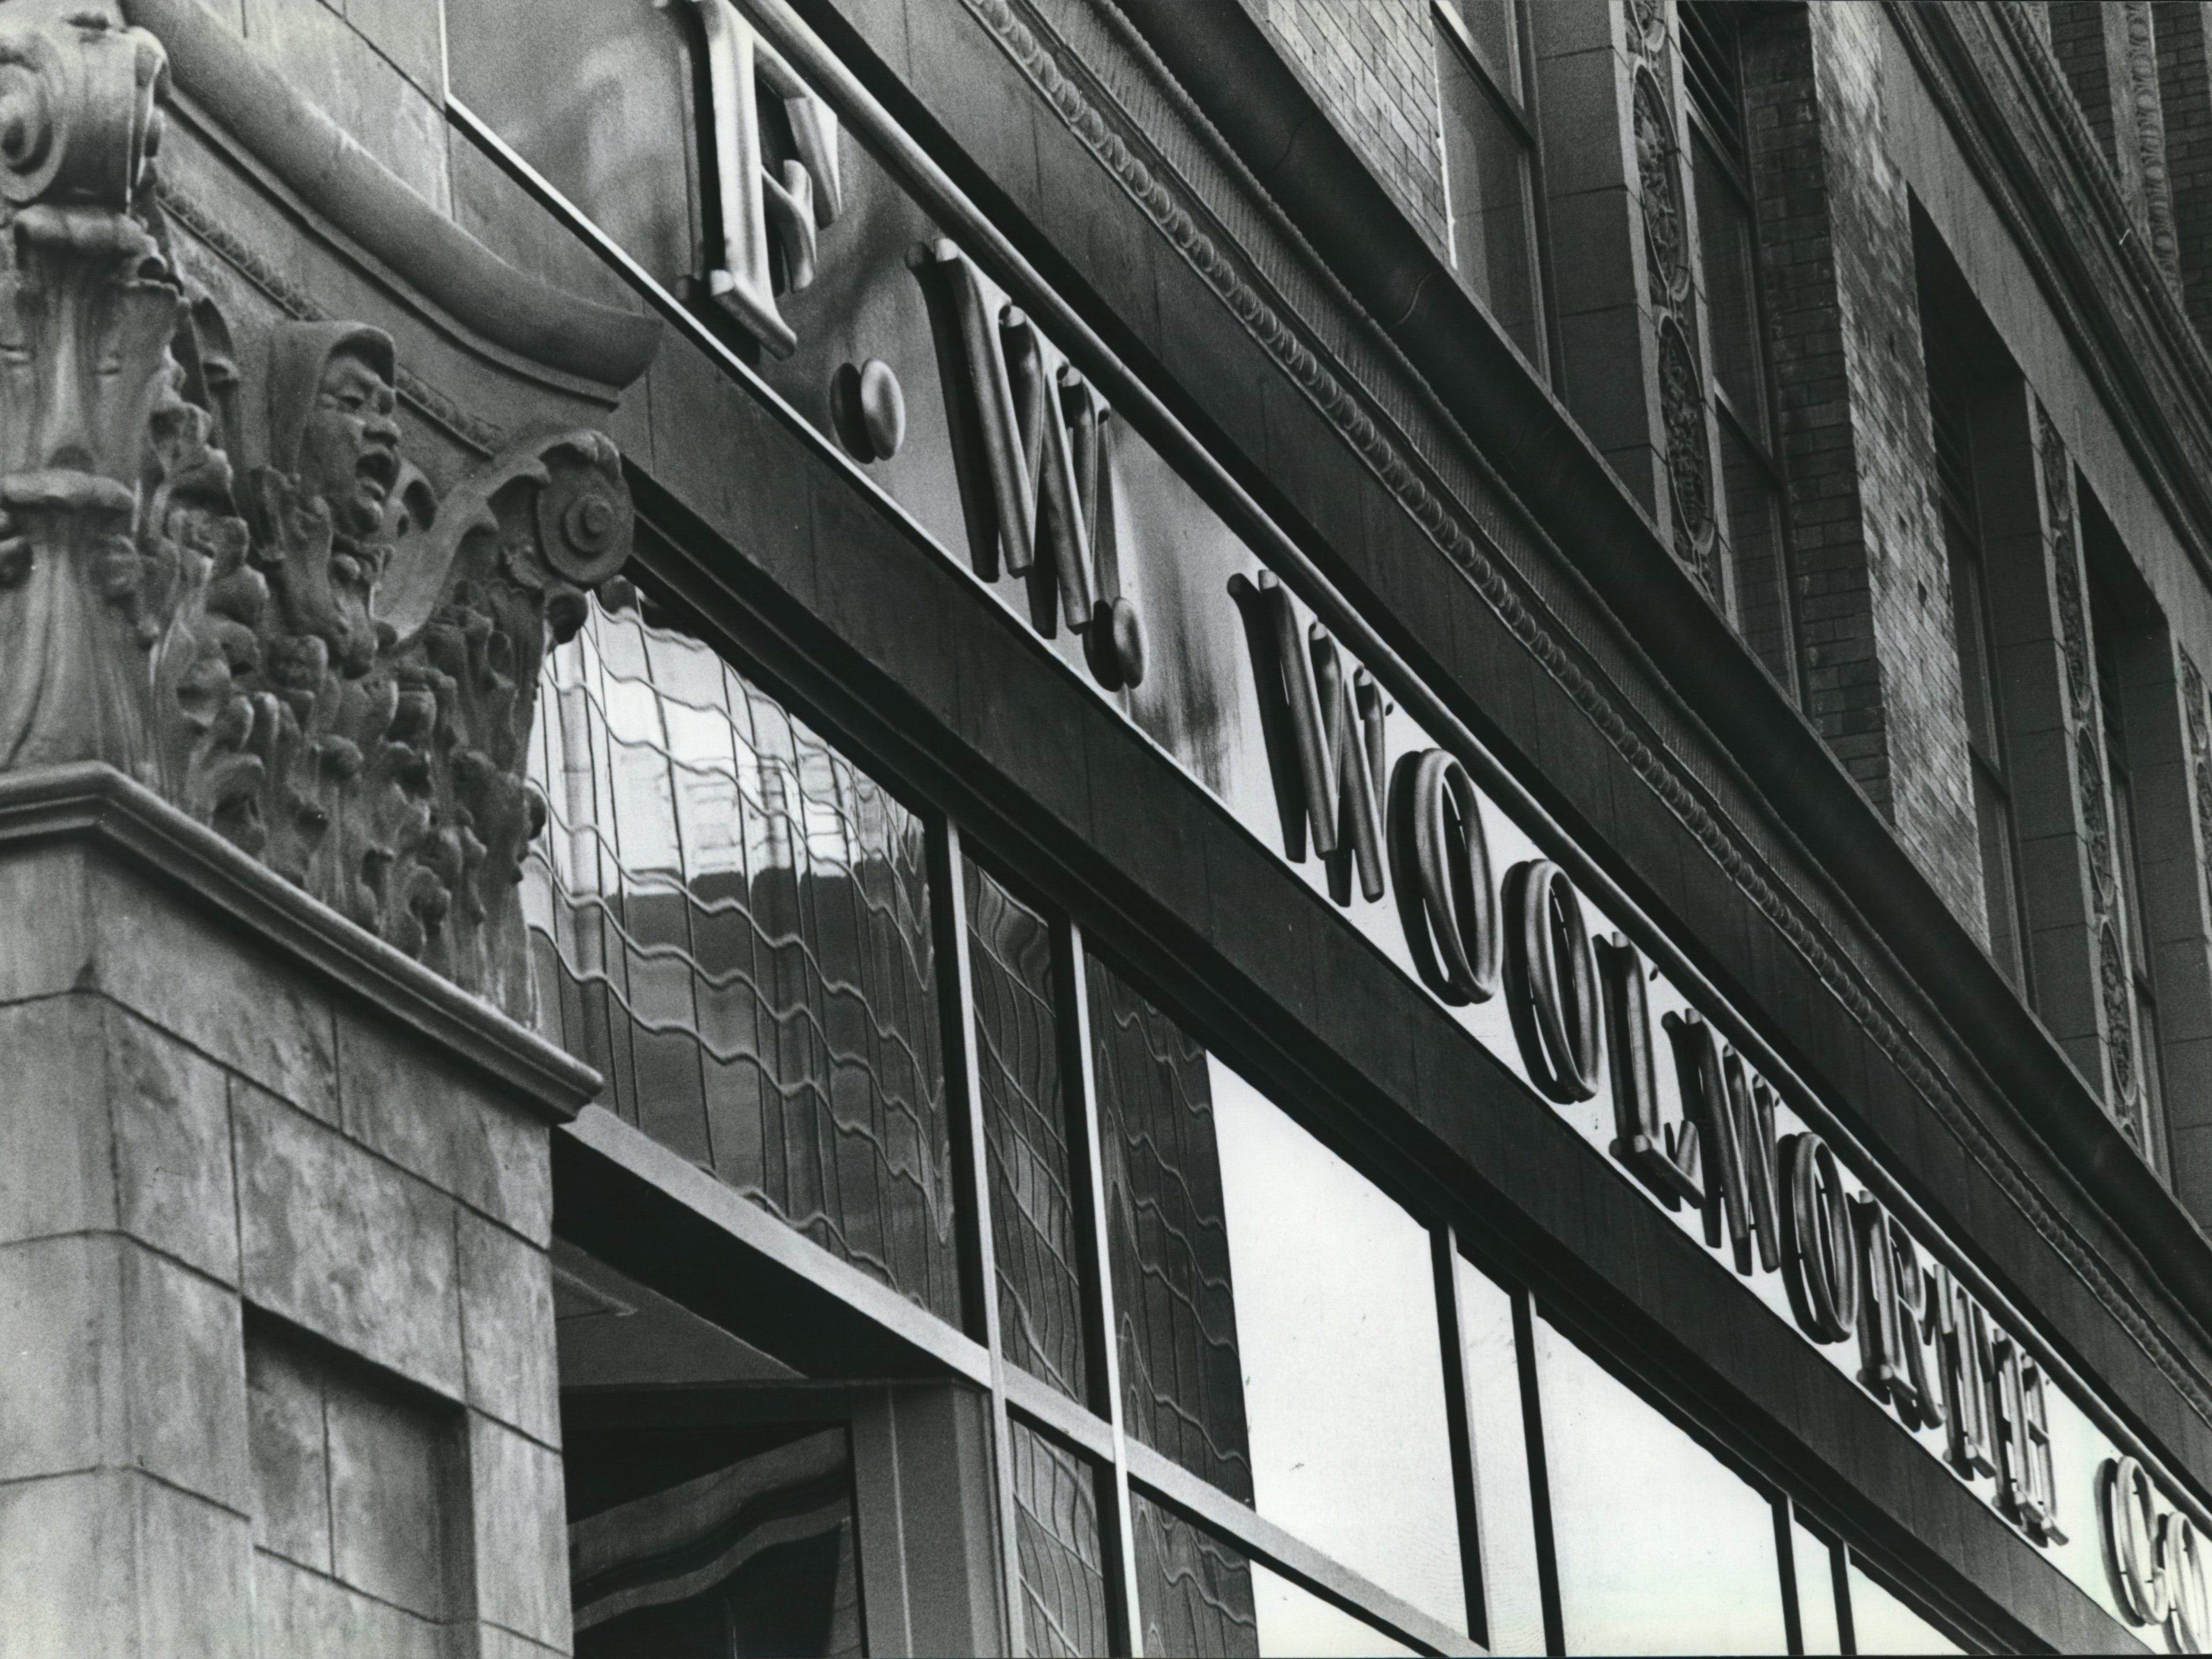 The F.W. Wollworth Company building sports a reproduction of the store's traditional sign, new metal window frames and refurbished ornaments. (Grand Avenue Mall)